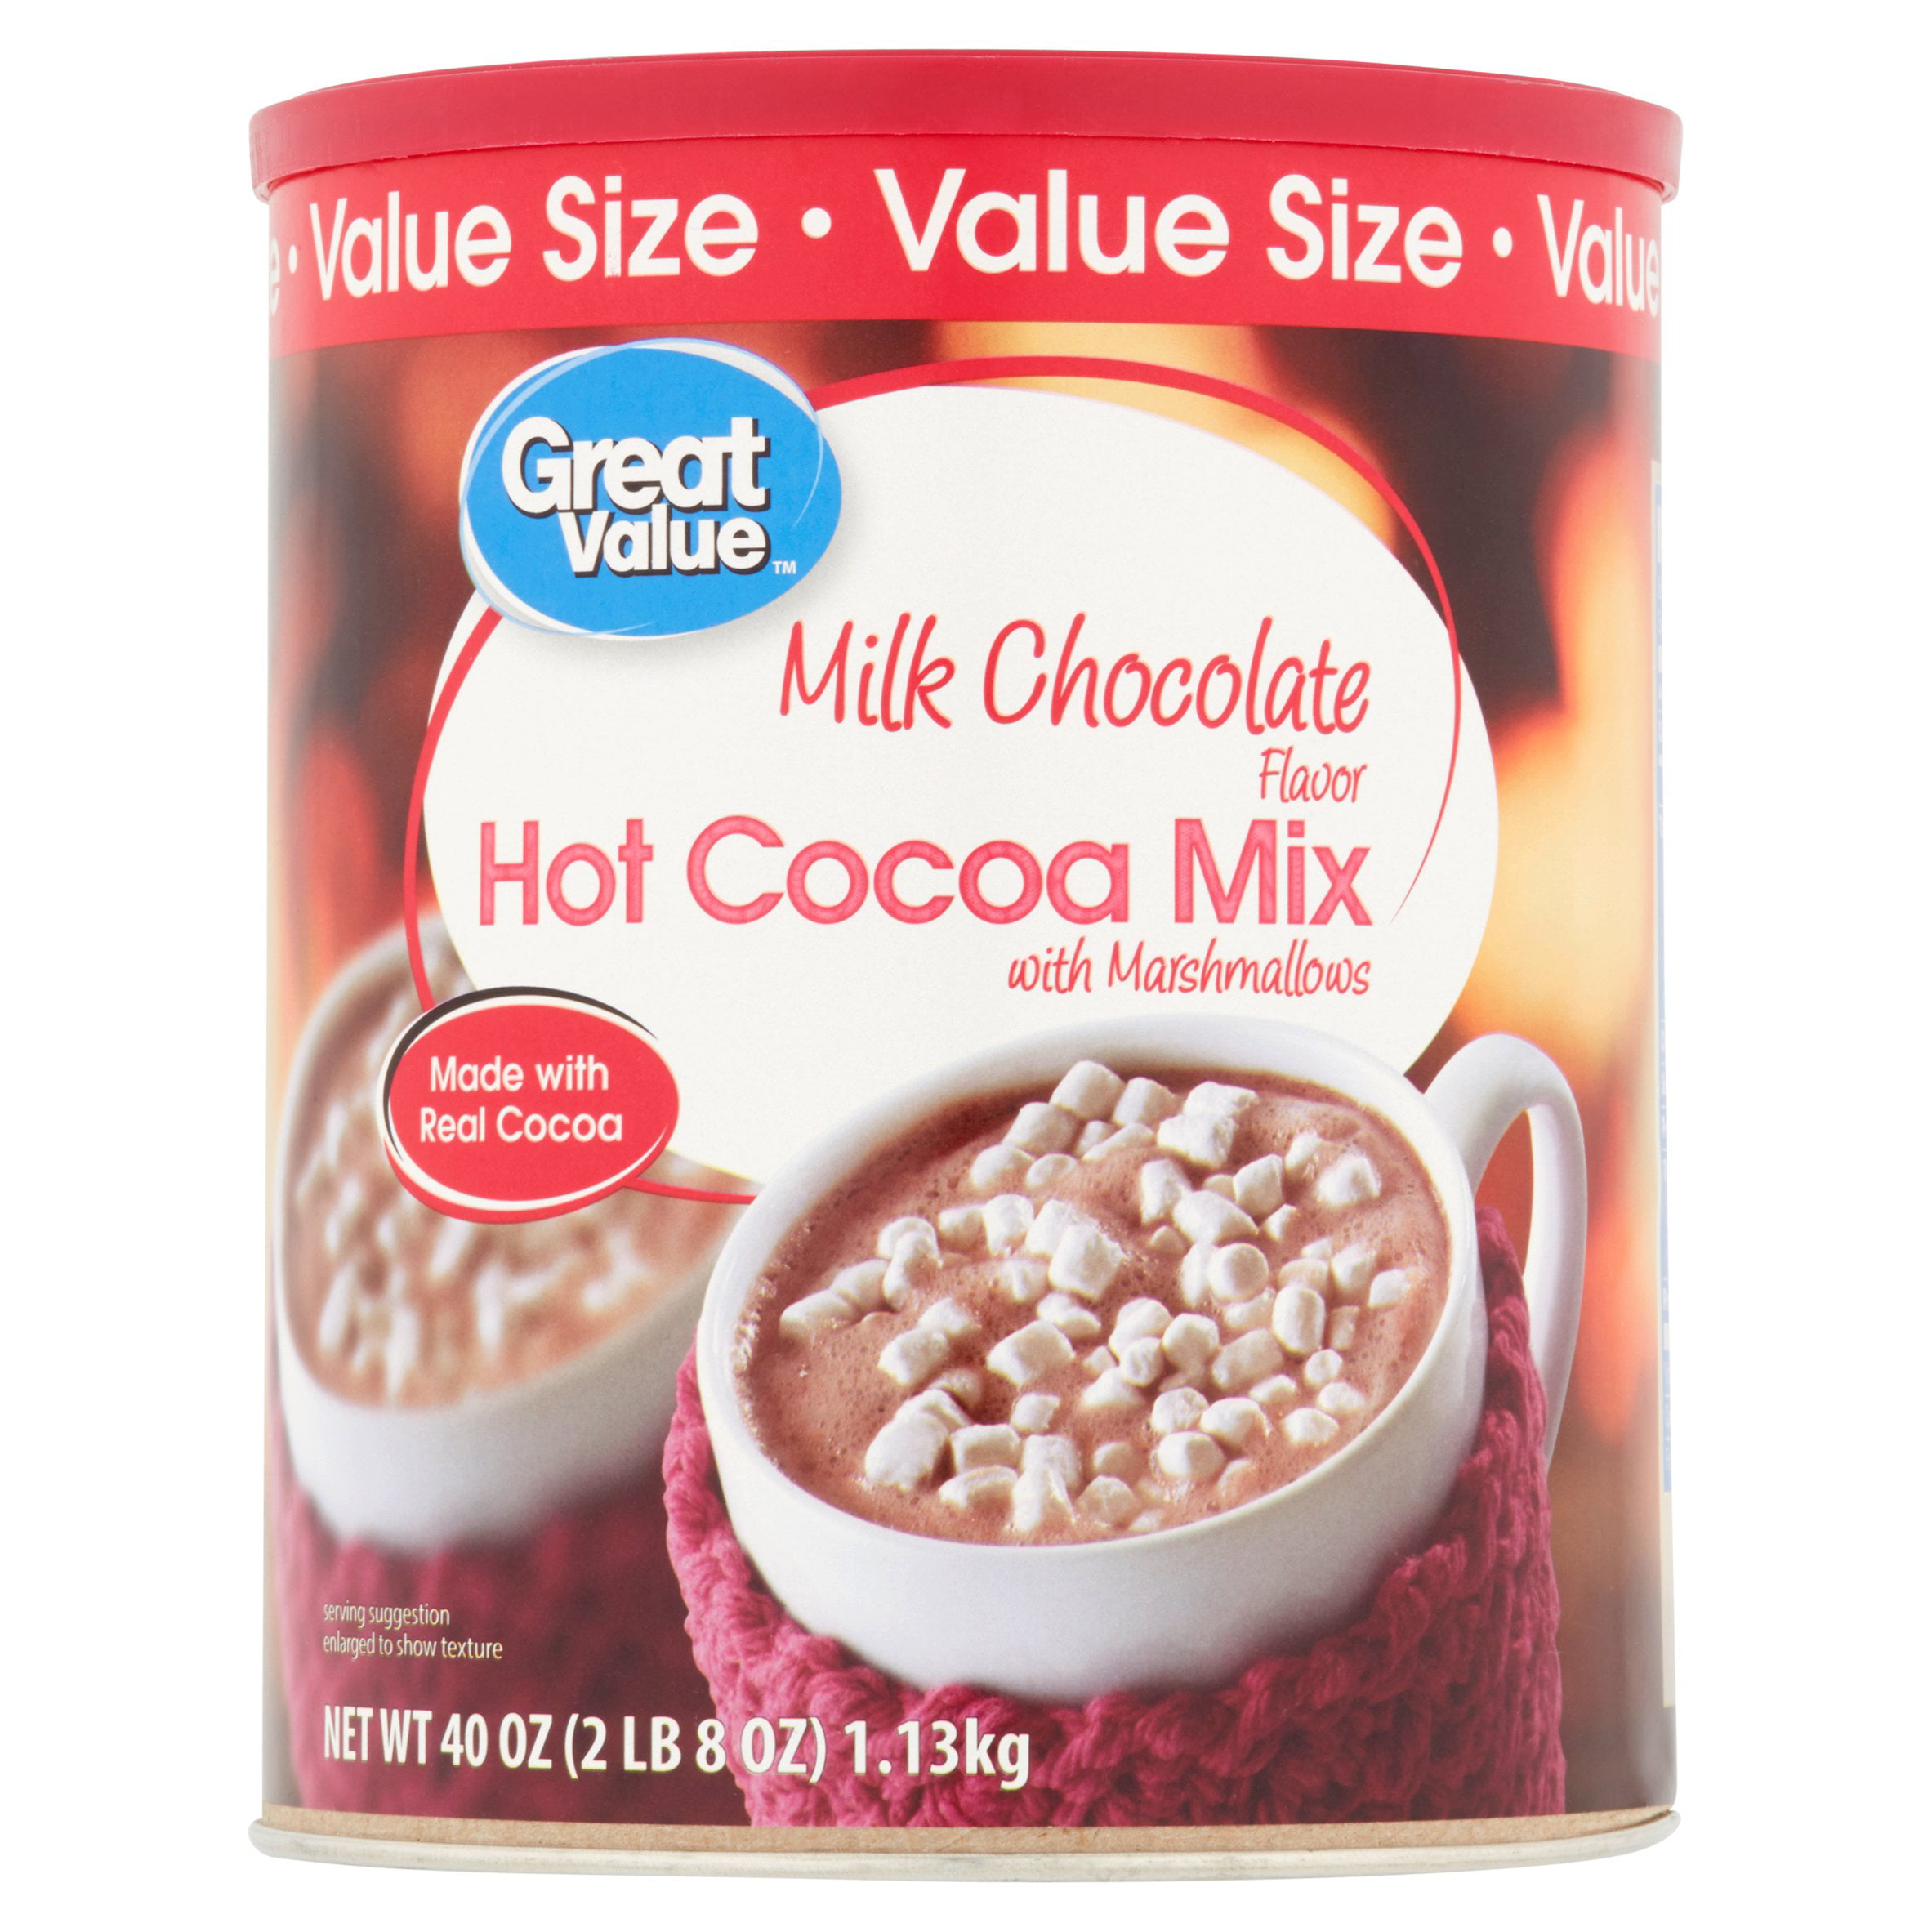 Great Value Hot Cocoa Mix, Milk Chocolate with Marshmallows, Value Size, 40 oz by Wal-Mart Stores, Inc.